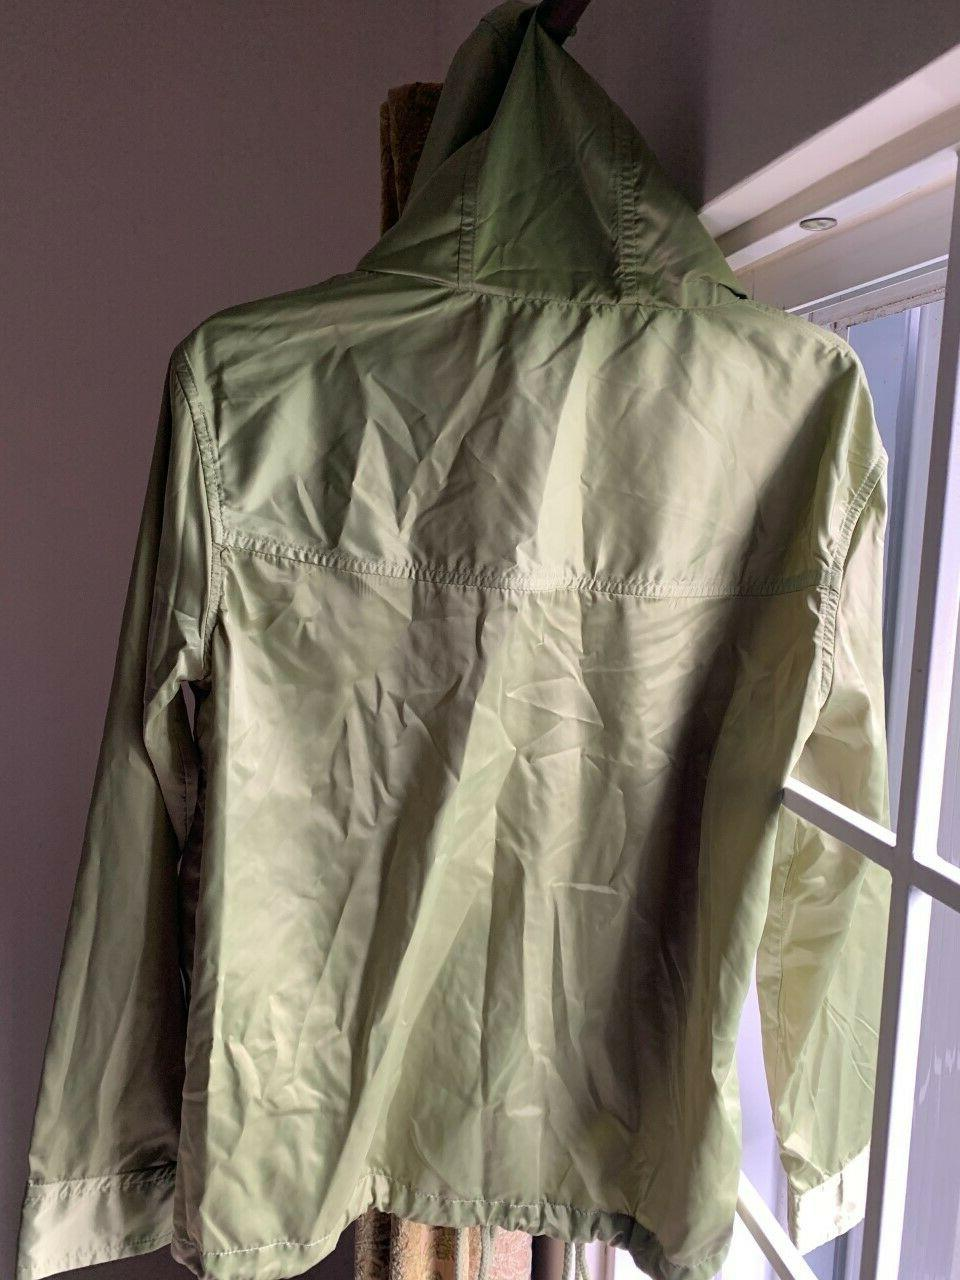 NWT $150 WOMENS HOODED XS LIGHTWEIGHT JACKET